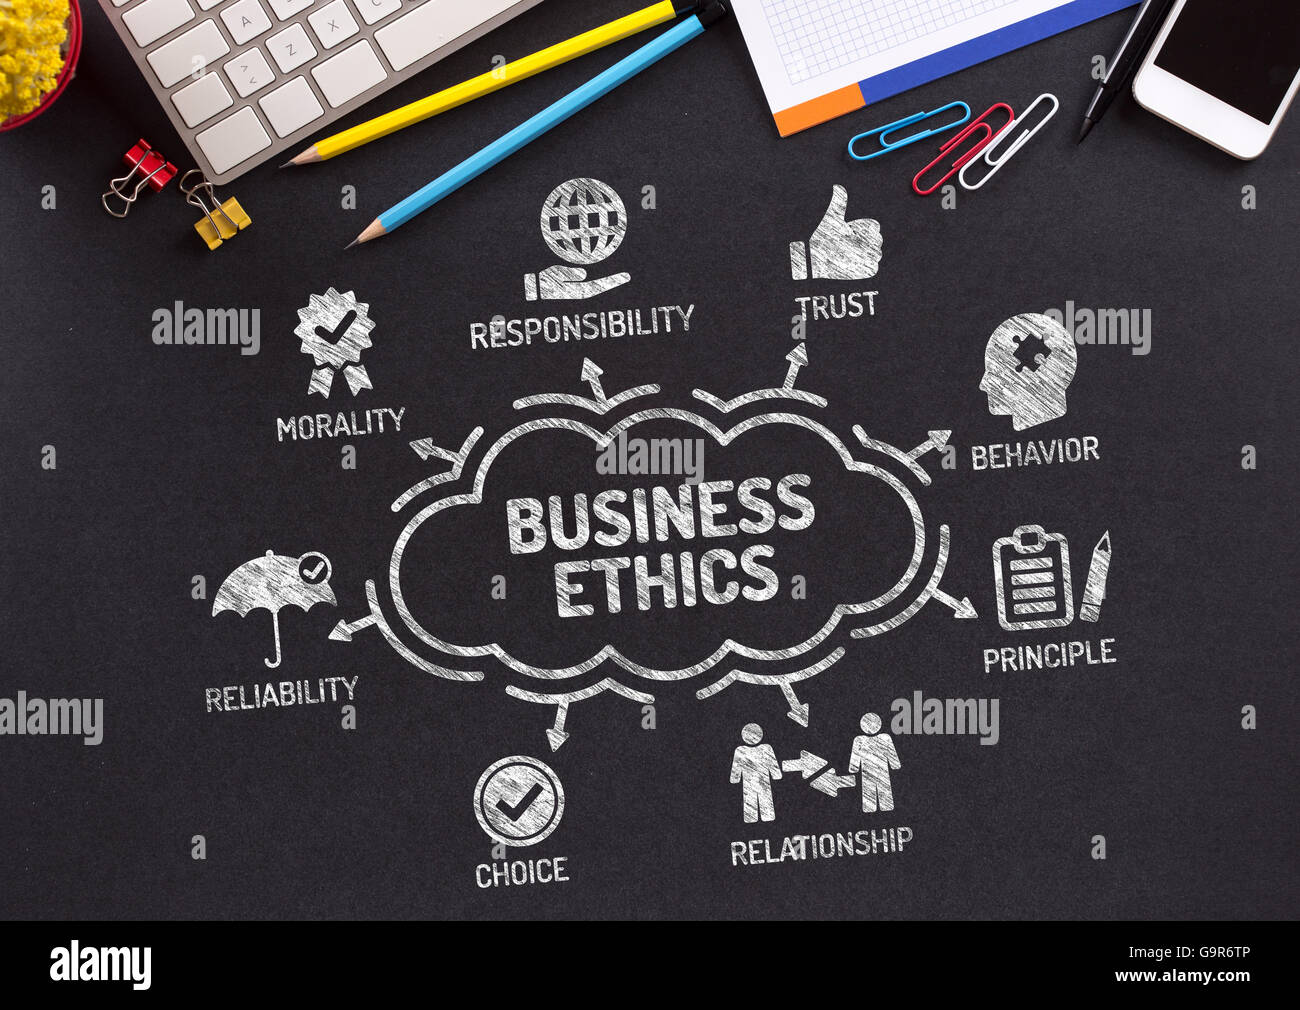 Business Ethics Chart with keywords and icons on blackboard - Stock Image